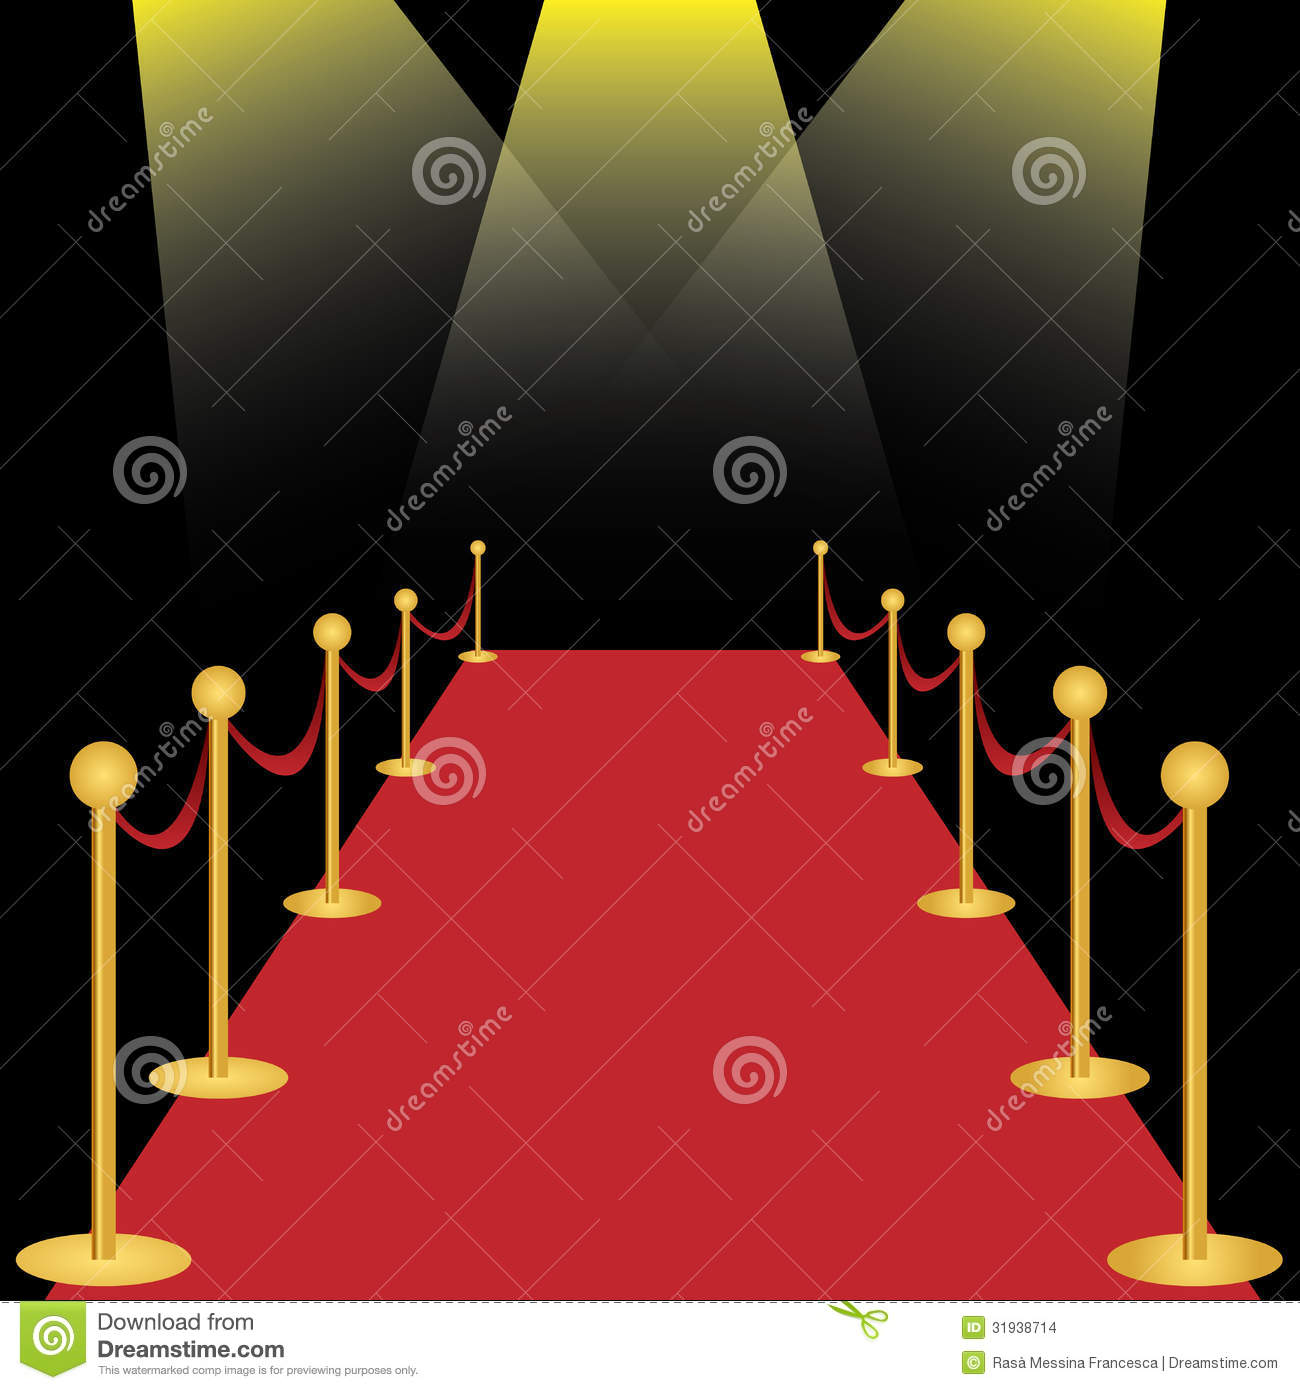 2 together with Setdetail together with Stock Images Red Carpet Spotlights Black Background Image31938714 in addition Modern Abstract Paintings Of Women as well Details. on oscar id card